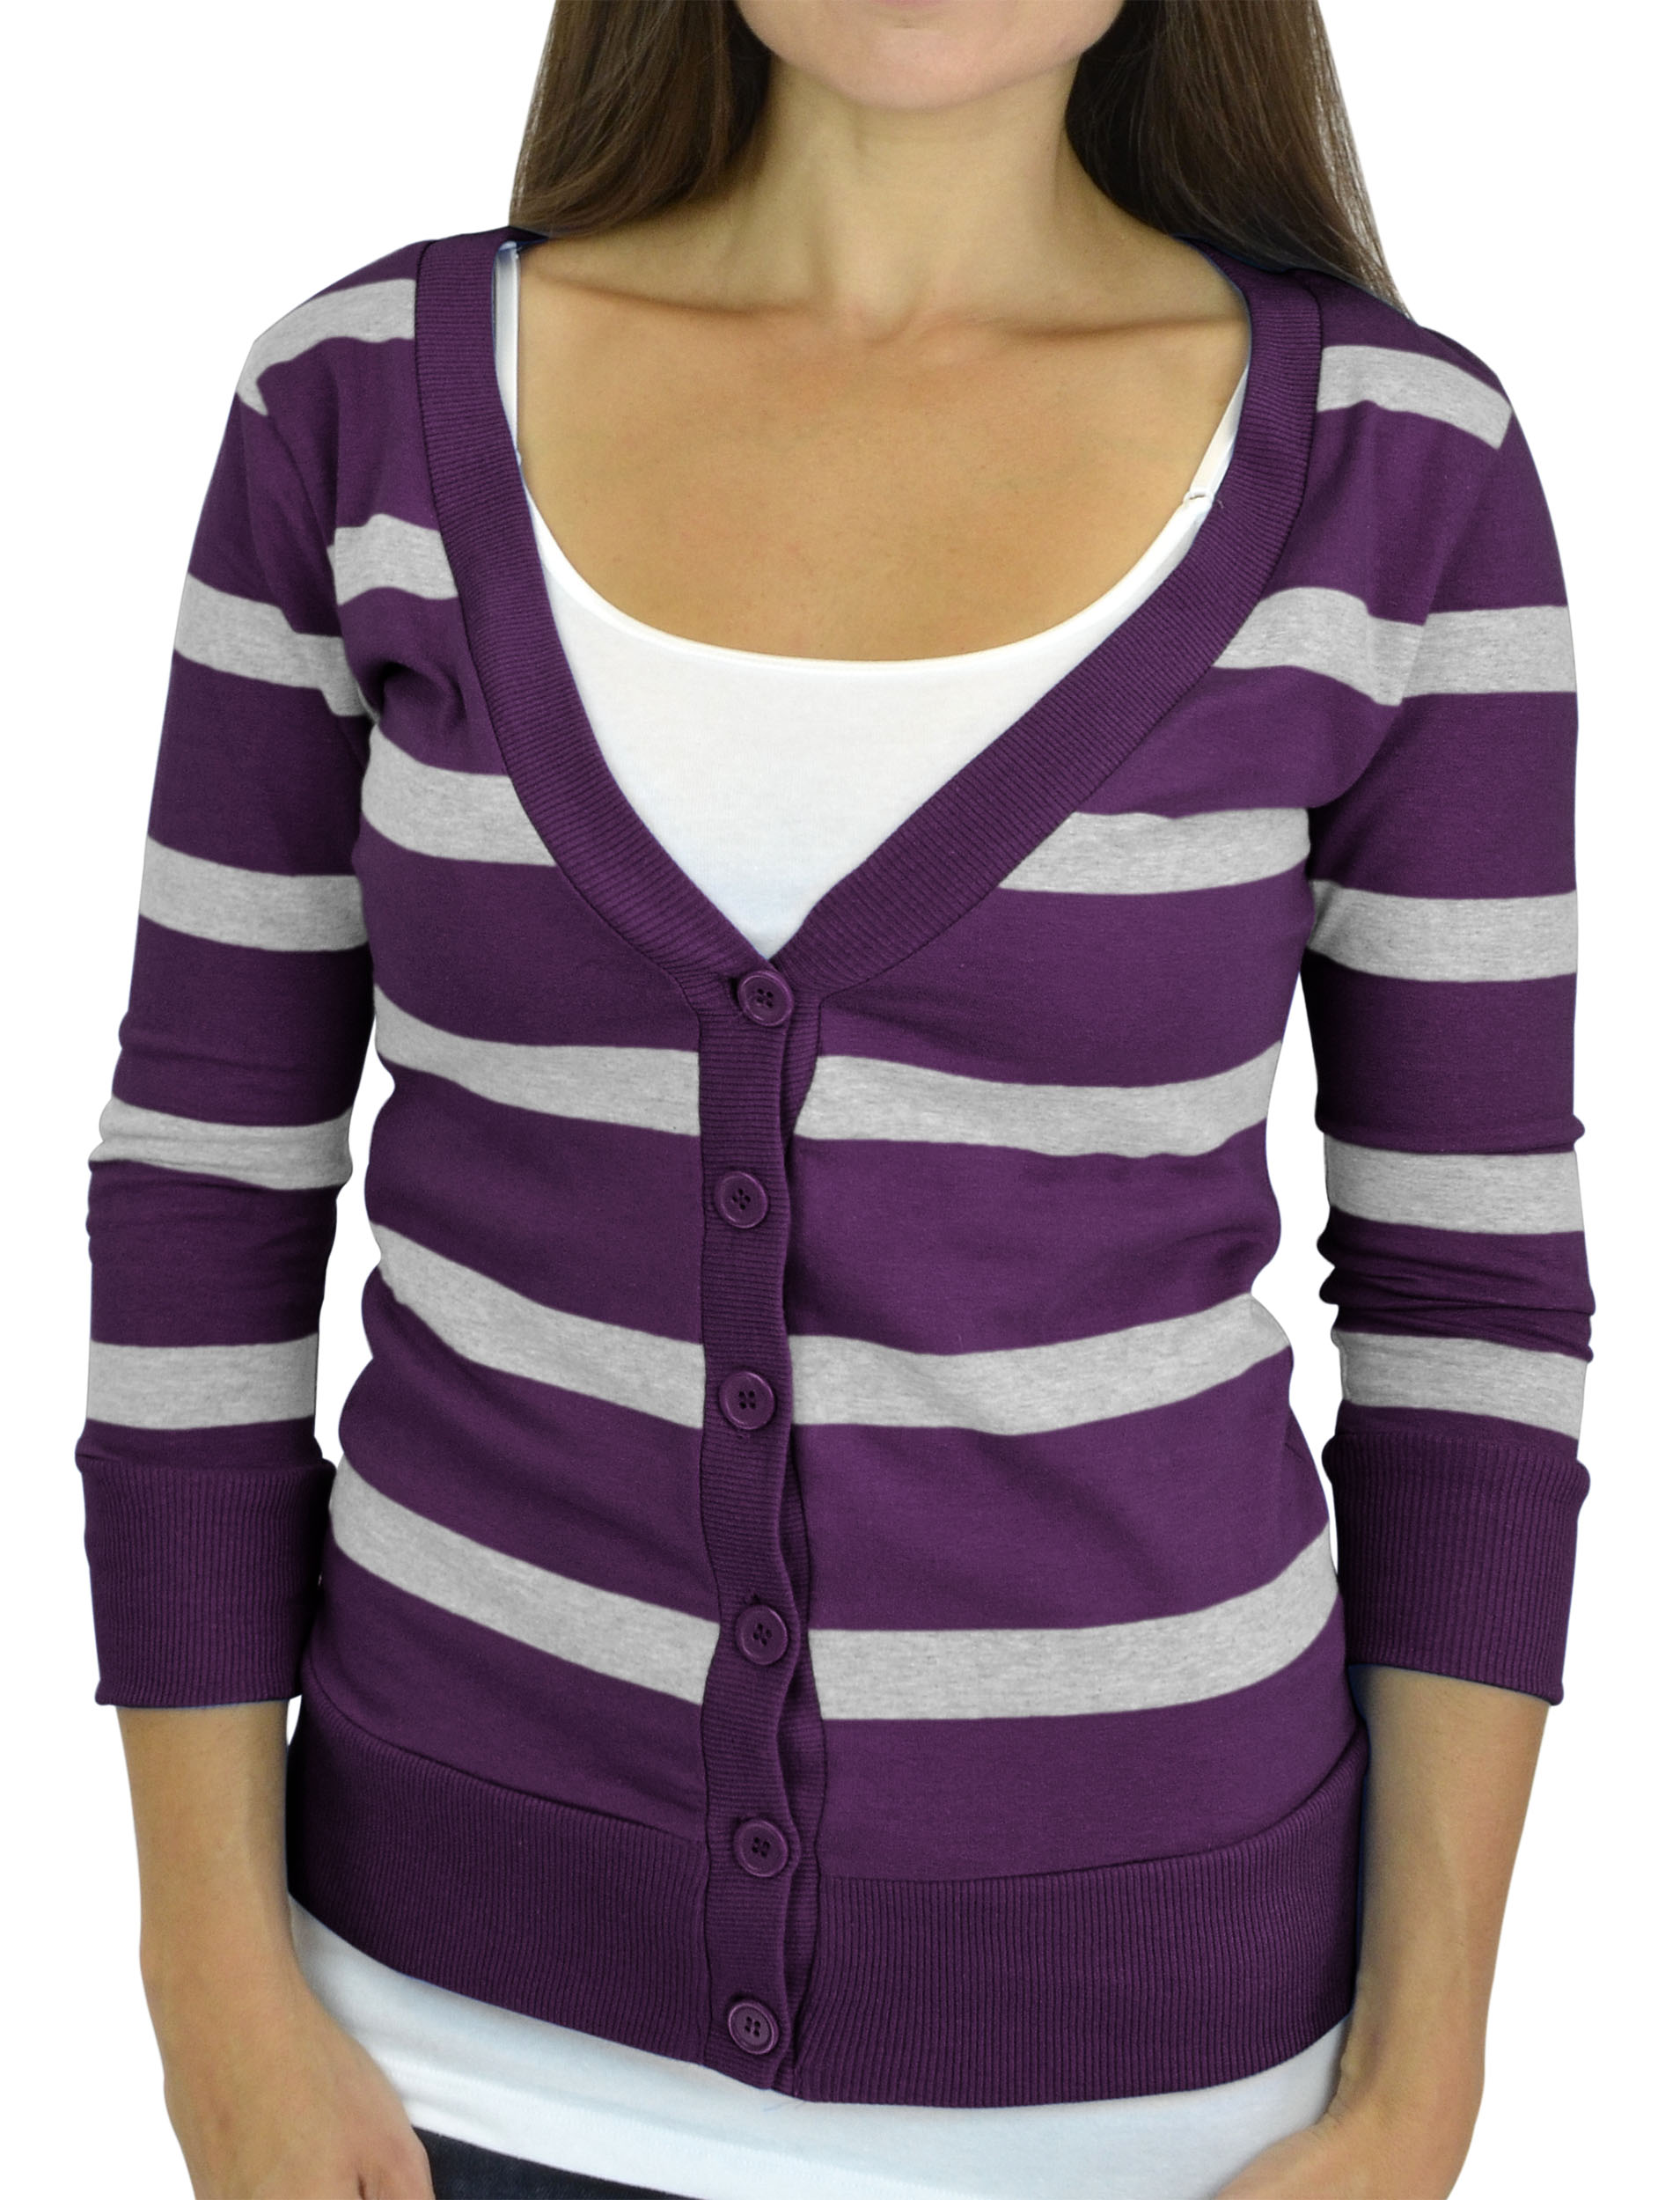 Belle Donne - Women / Girl Junior Size Soft 3/4 Sleeve V-Neck Sweater Cardigans - Purple/Medium